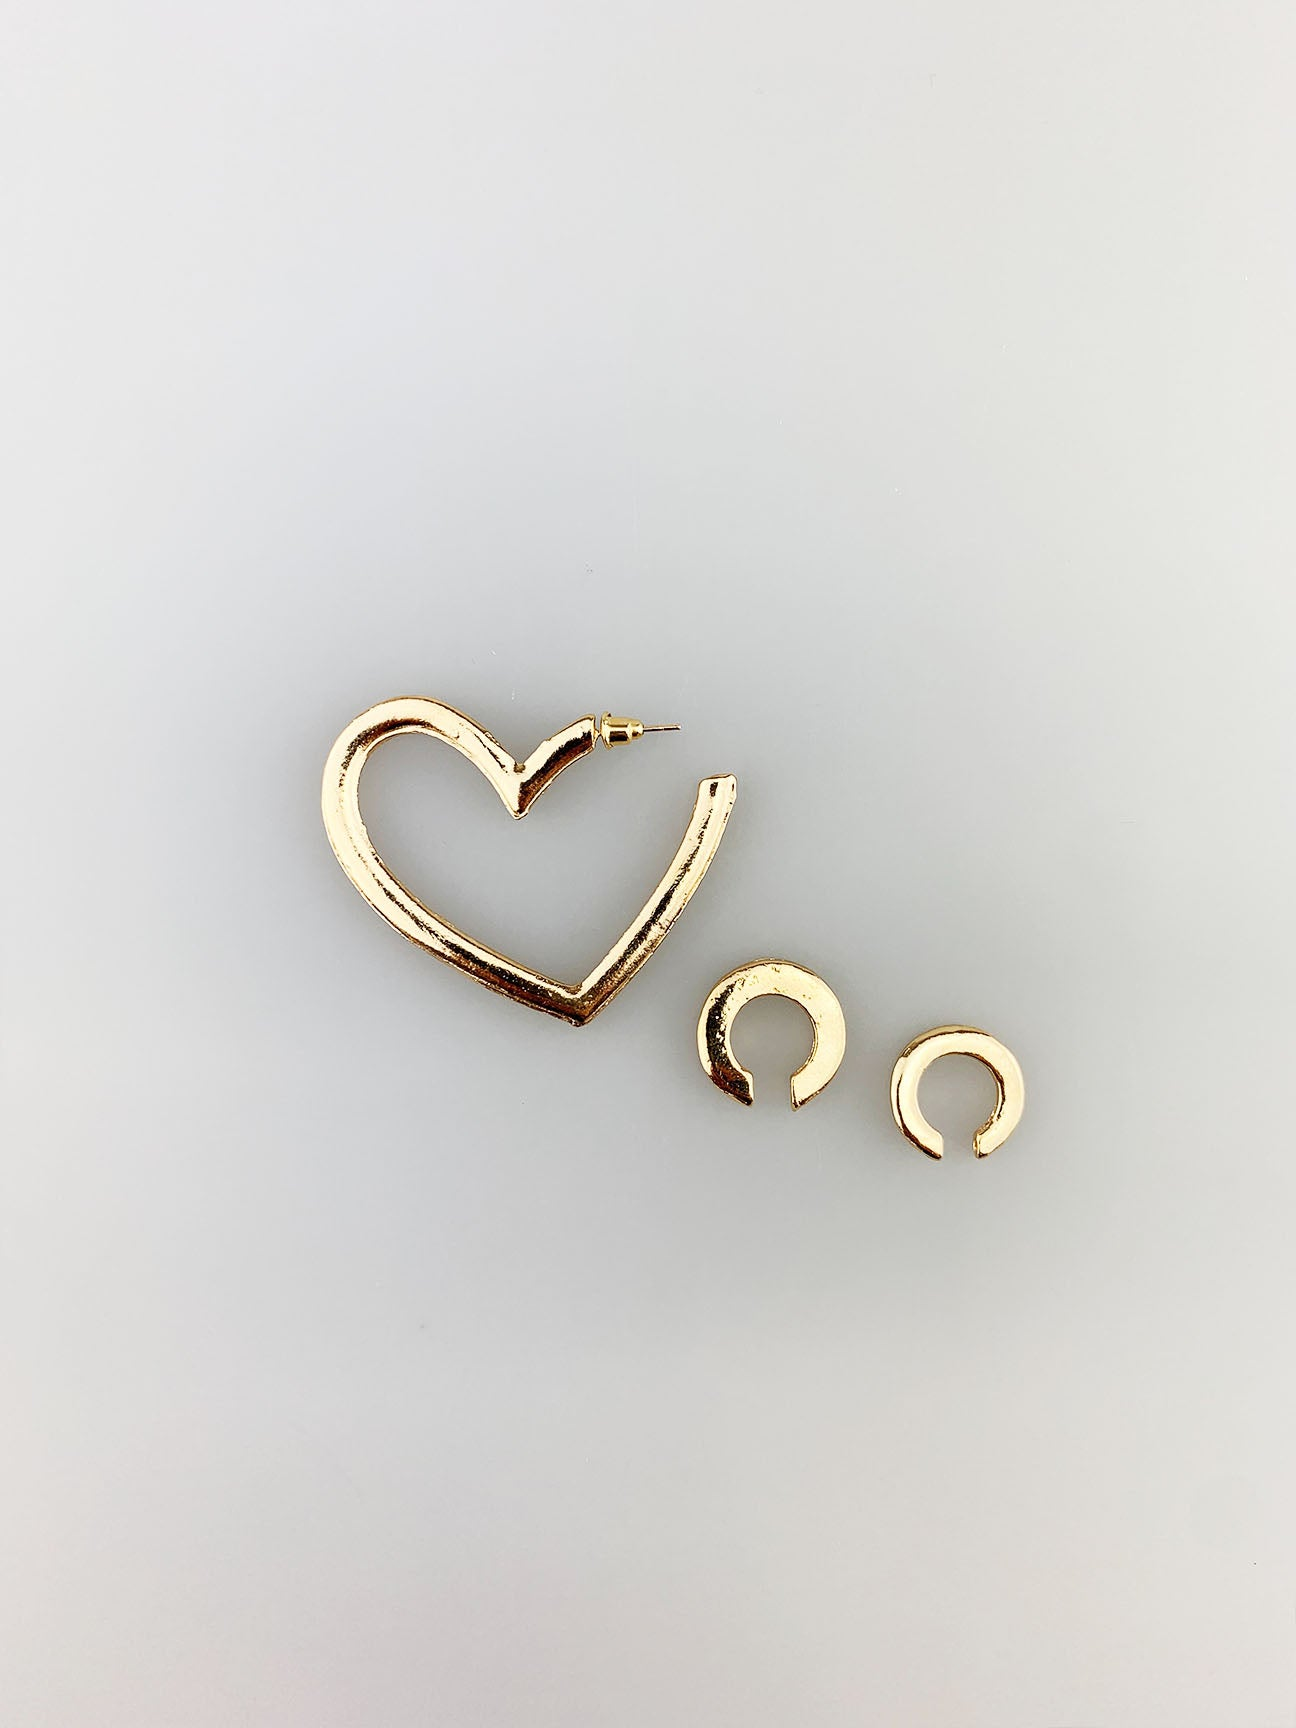 Heart Shaped Earrings with Cuffs